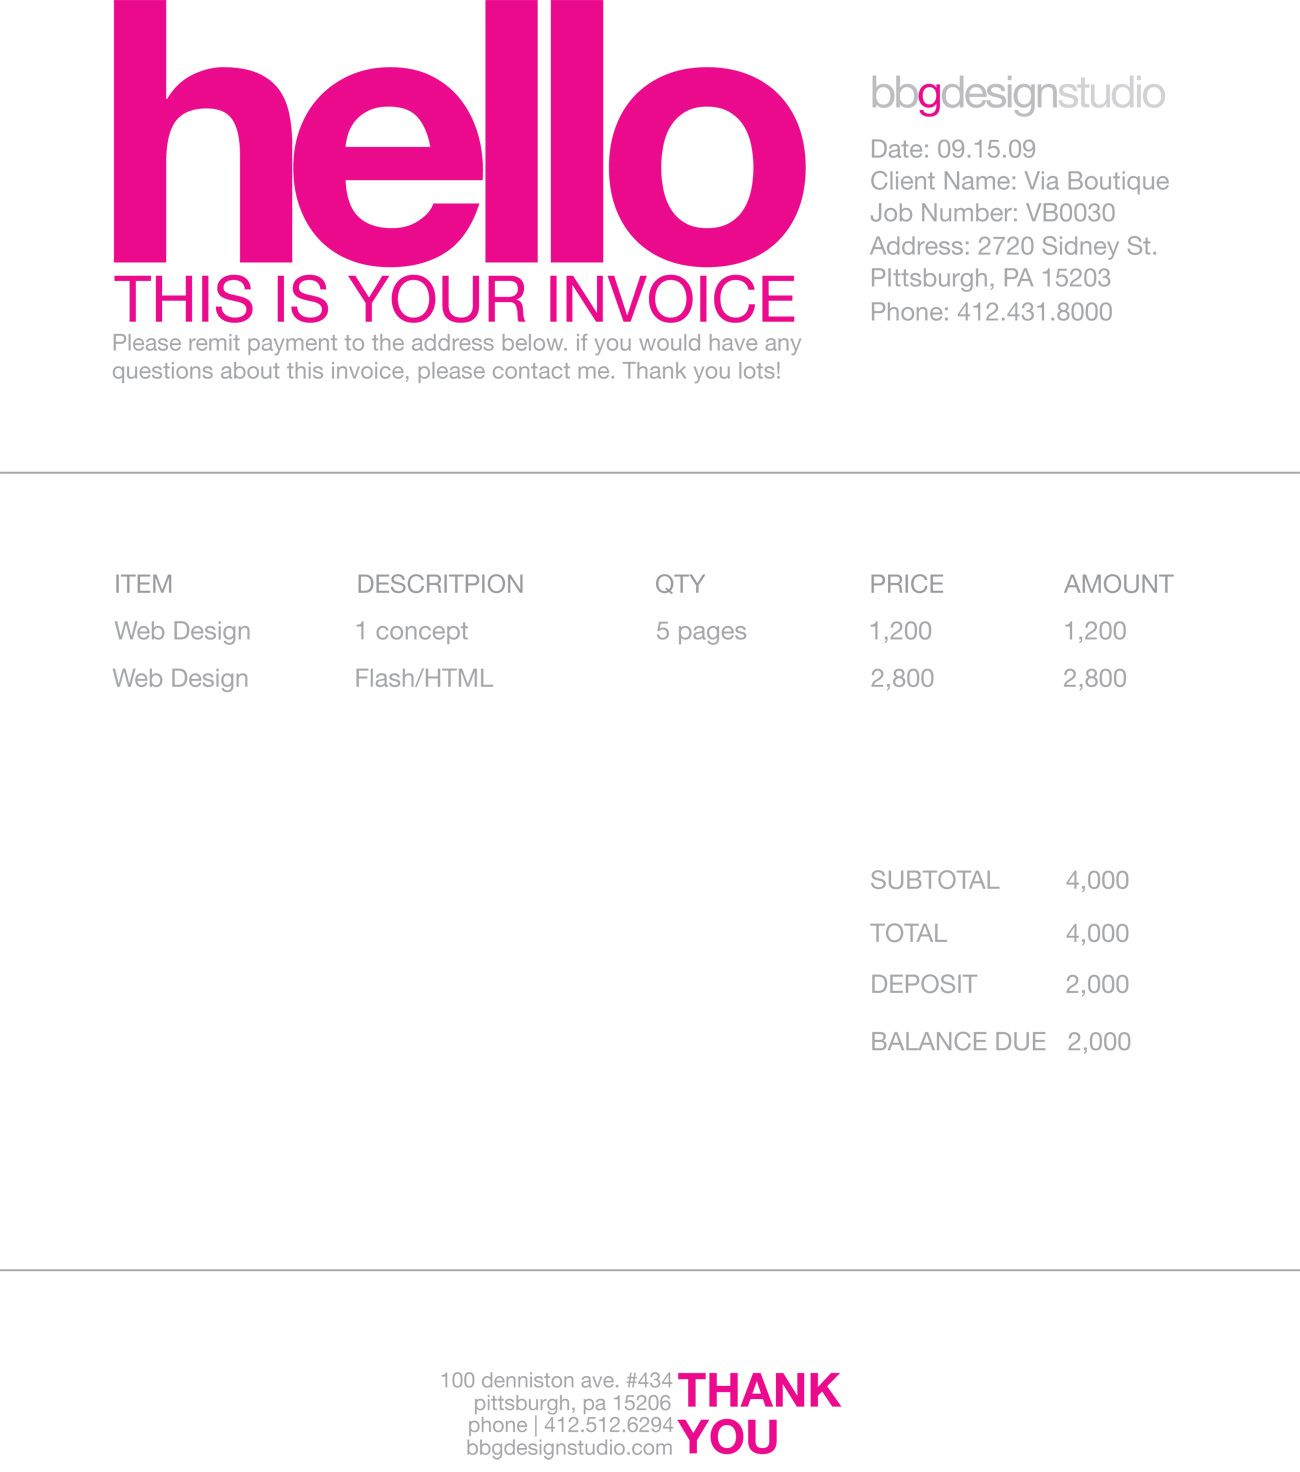 Adoringacklesus  Unusual  Images About Invoice Design On Pinterest With Marvelous Official Receipt Meaning Besides Neat Receipts And Quickbooks Furthermore Receipt Example Form With Astounding Sample Car Sale Receipt Also Free Printable Rent Receipt Template In Addition Cash Receipt Doc And Room Rent Receipt Format Pdf As Well As Selling A Car Receipt Template Additionally Sample Cash Receipts Journal From Pinterestcom With Adoringacklesus  Marvelous  Images About Invoice Design On Pinterest With Astounding Official Receipt Meaning Besides Neat Receipts And Quickbooks Furthermore Receipt Example Form And Unusual Sample Car Sale Receipt Also Free Printable Rent Receipt Template In Addition Cash Receipt Doc From Pinterestcom